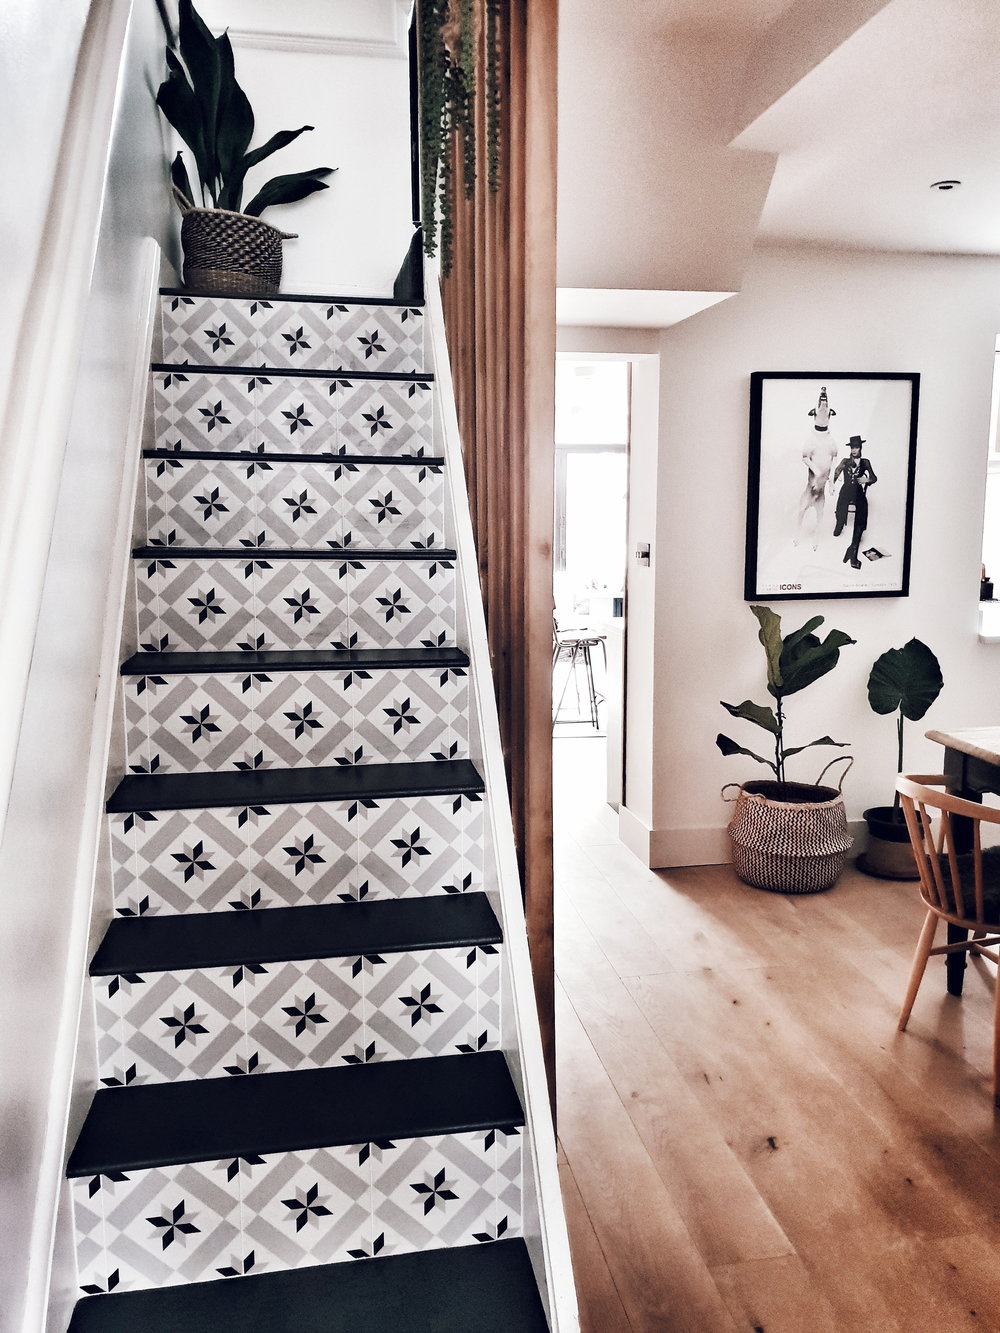 Those instagram famous stairs which are the first thing that catches your eye as you step inside the house